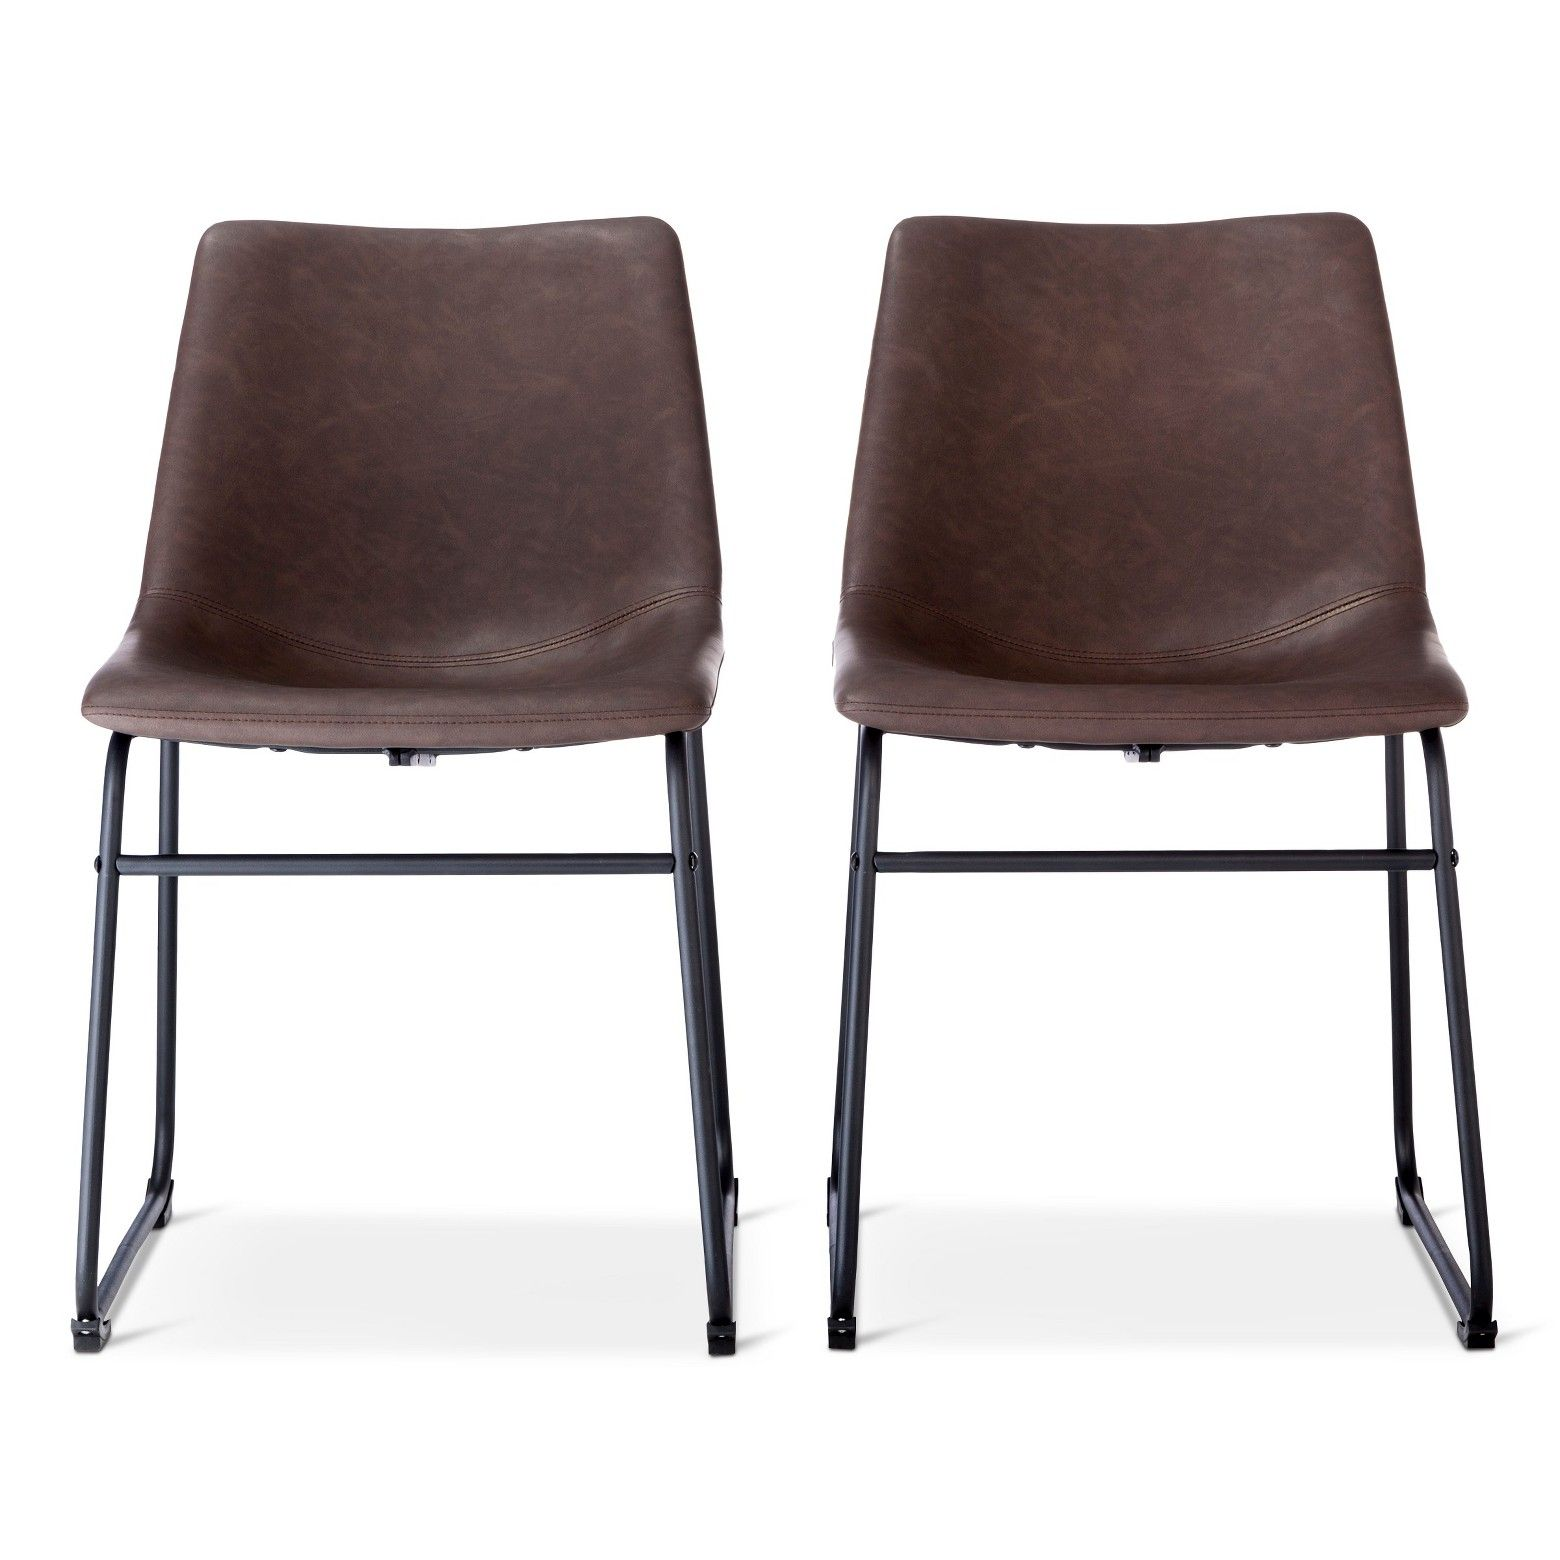 Faux Leather Industrial Dining Chairs From Target On Sale 90 For